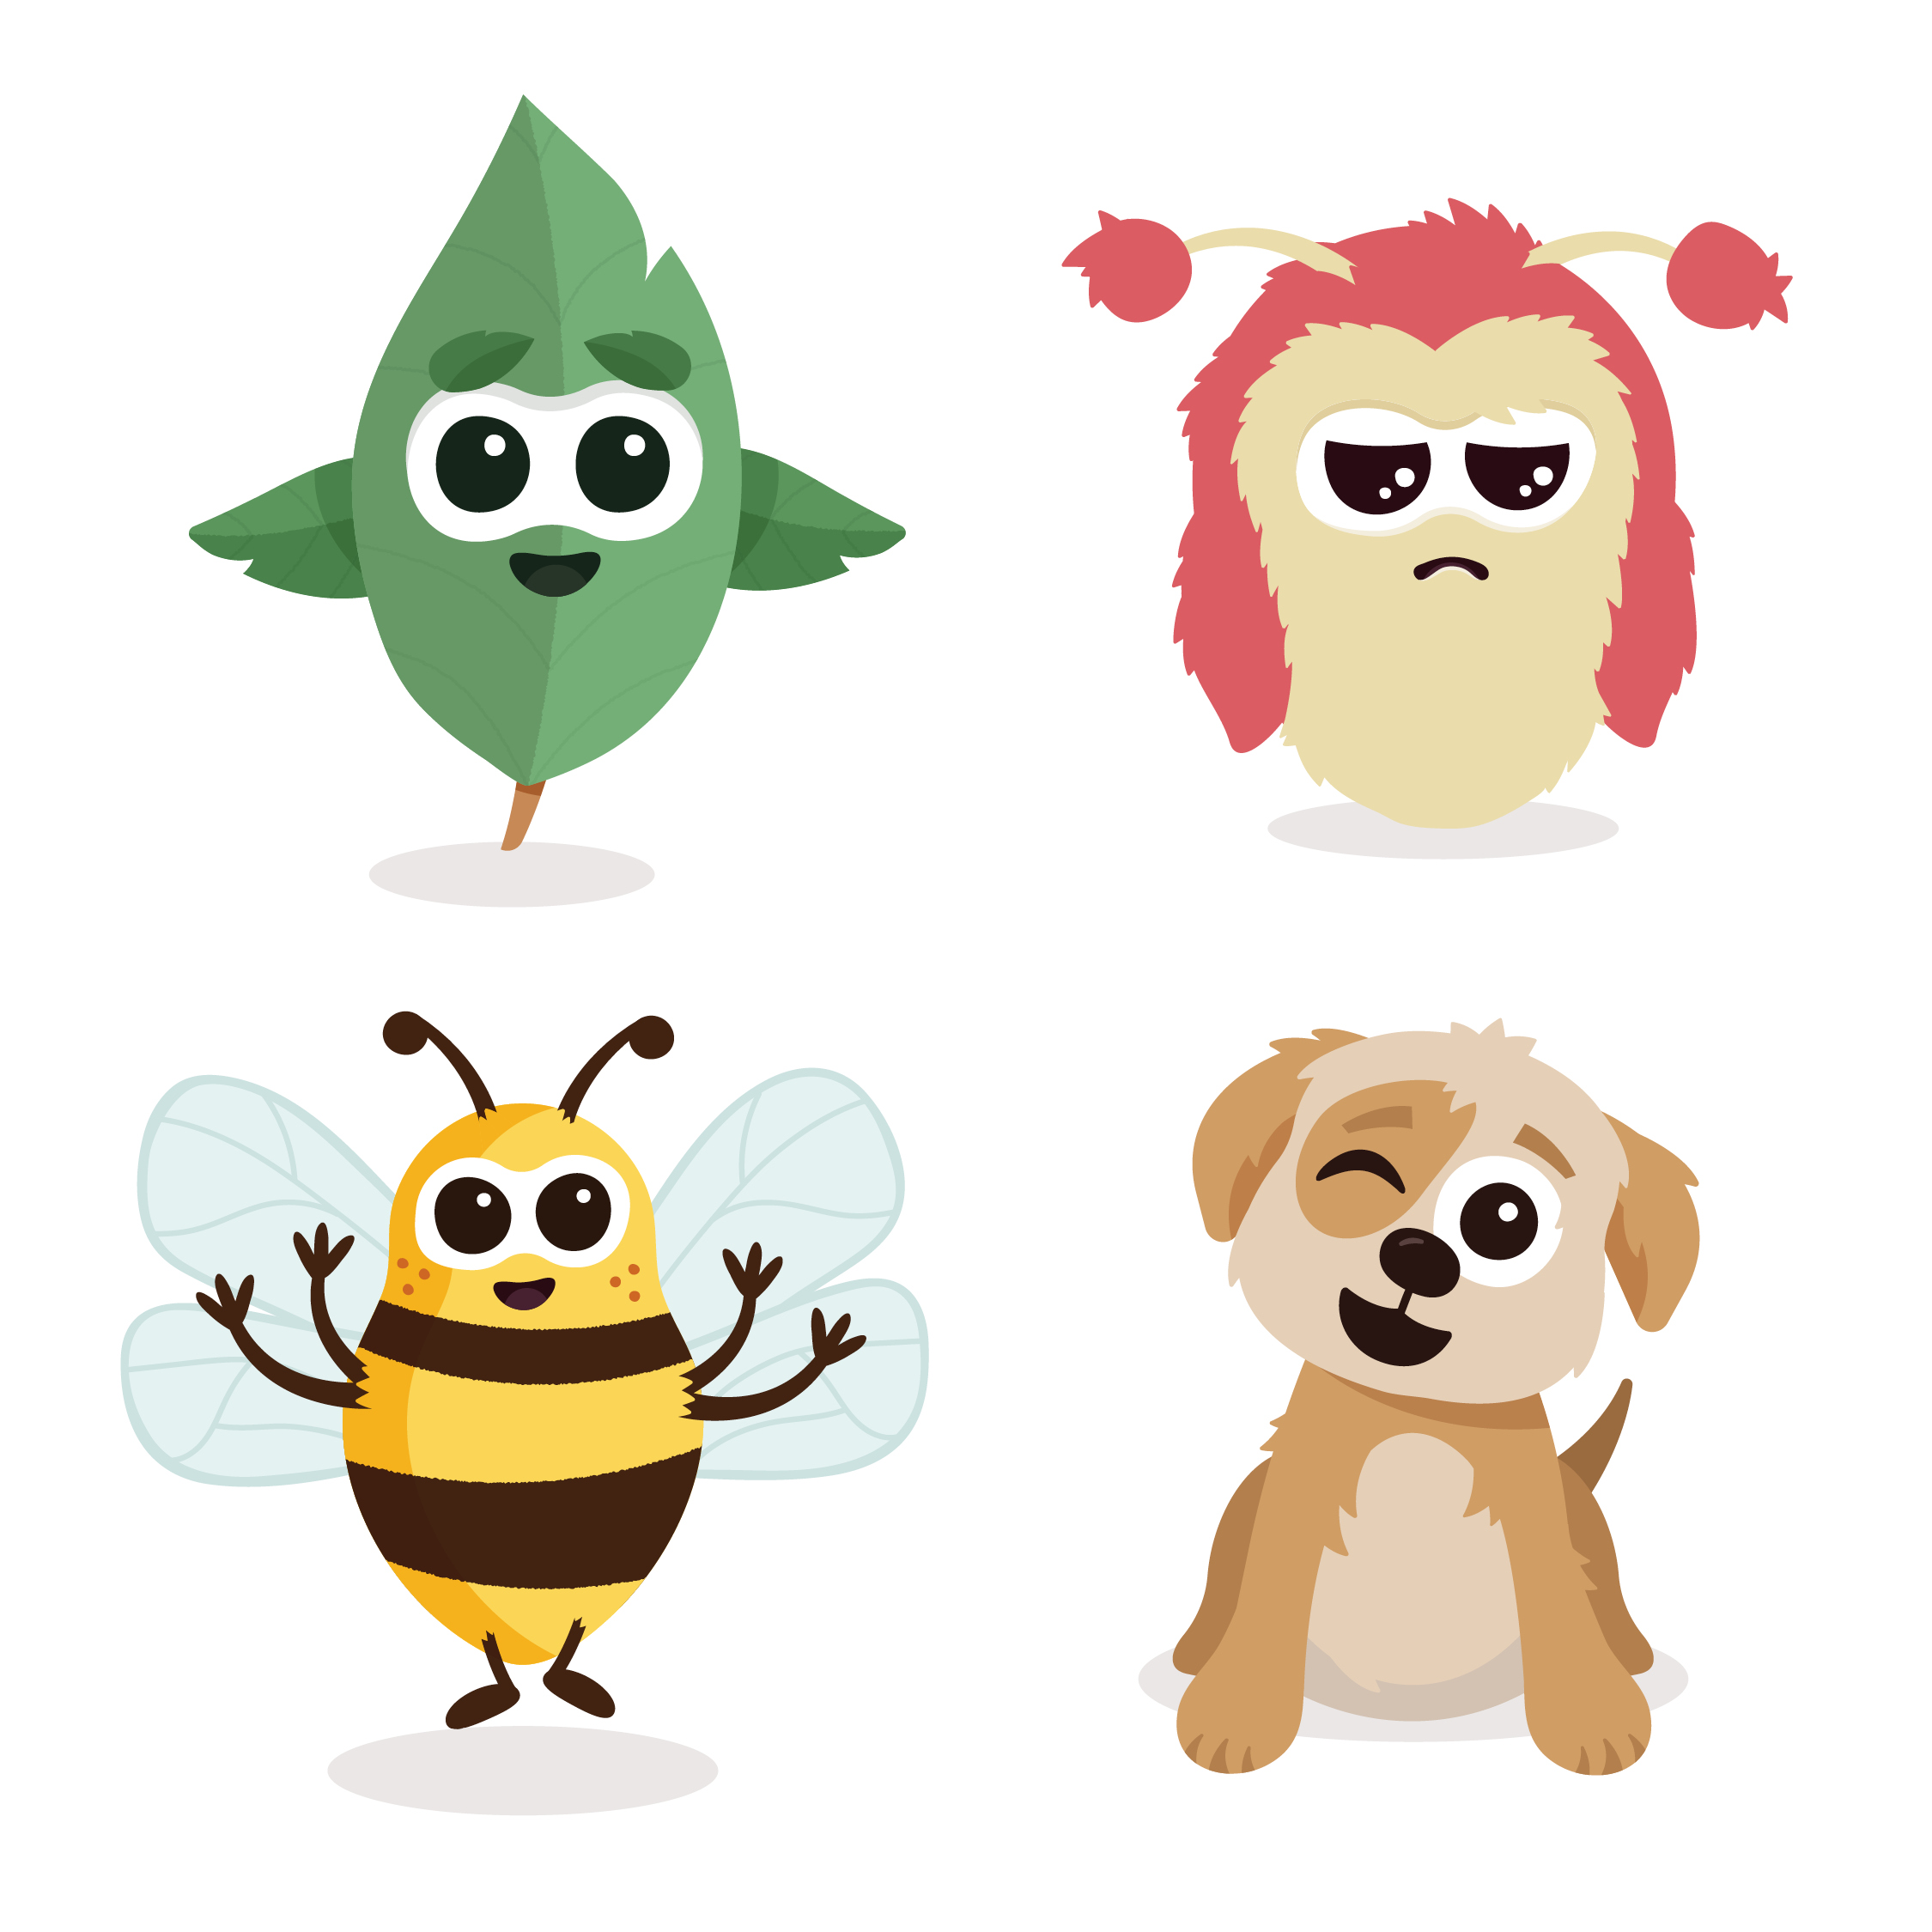 Wellbee character illustrations by Ben Clark Design